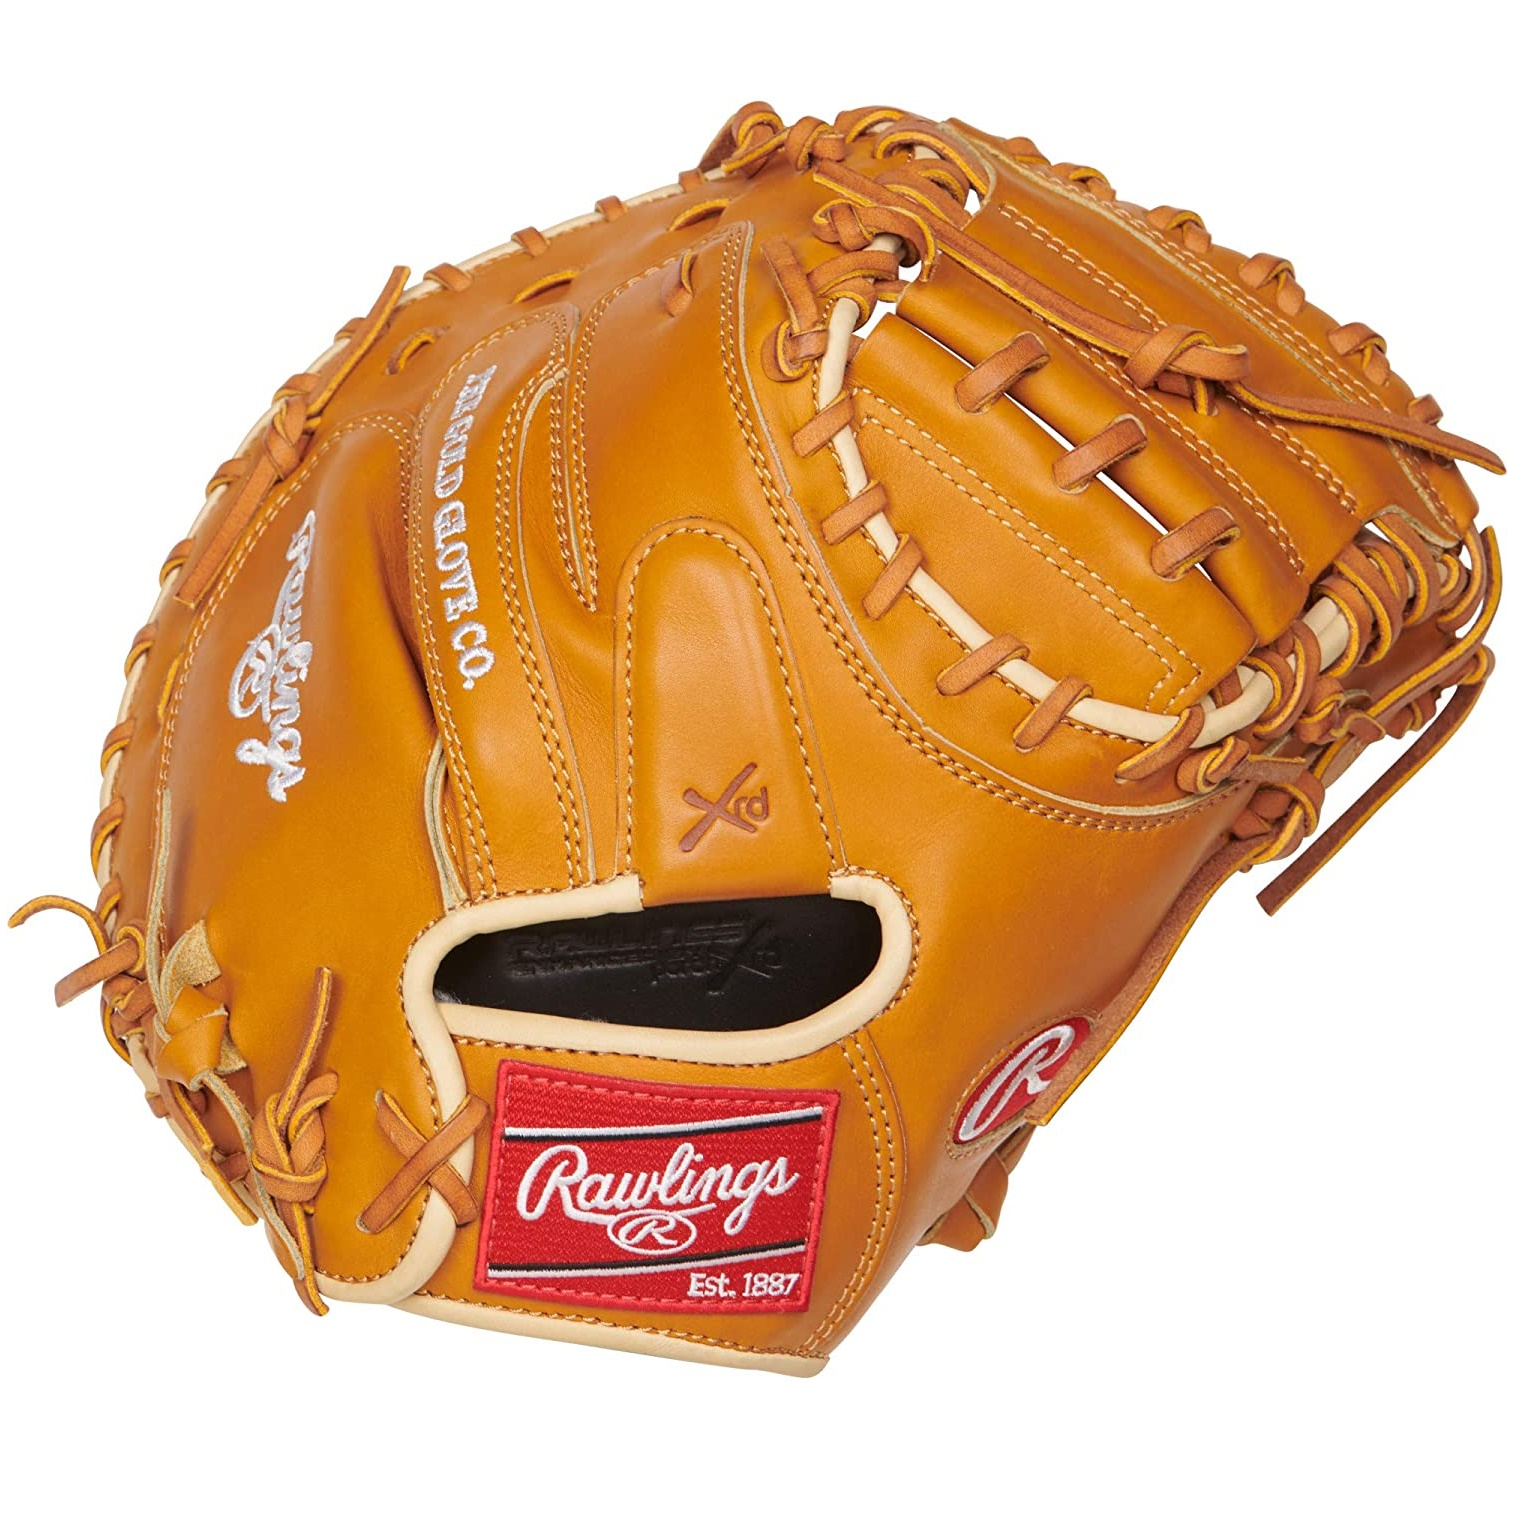 rawlings-proscm43rt-pro-preferred-rich-tan-catchers-mitt-34-right-hand-throw PROSCM43RT-RightHandThrow   Known for their clean supple kip leather Pro Preferred® series gloves